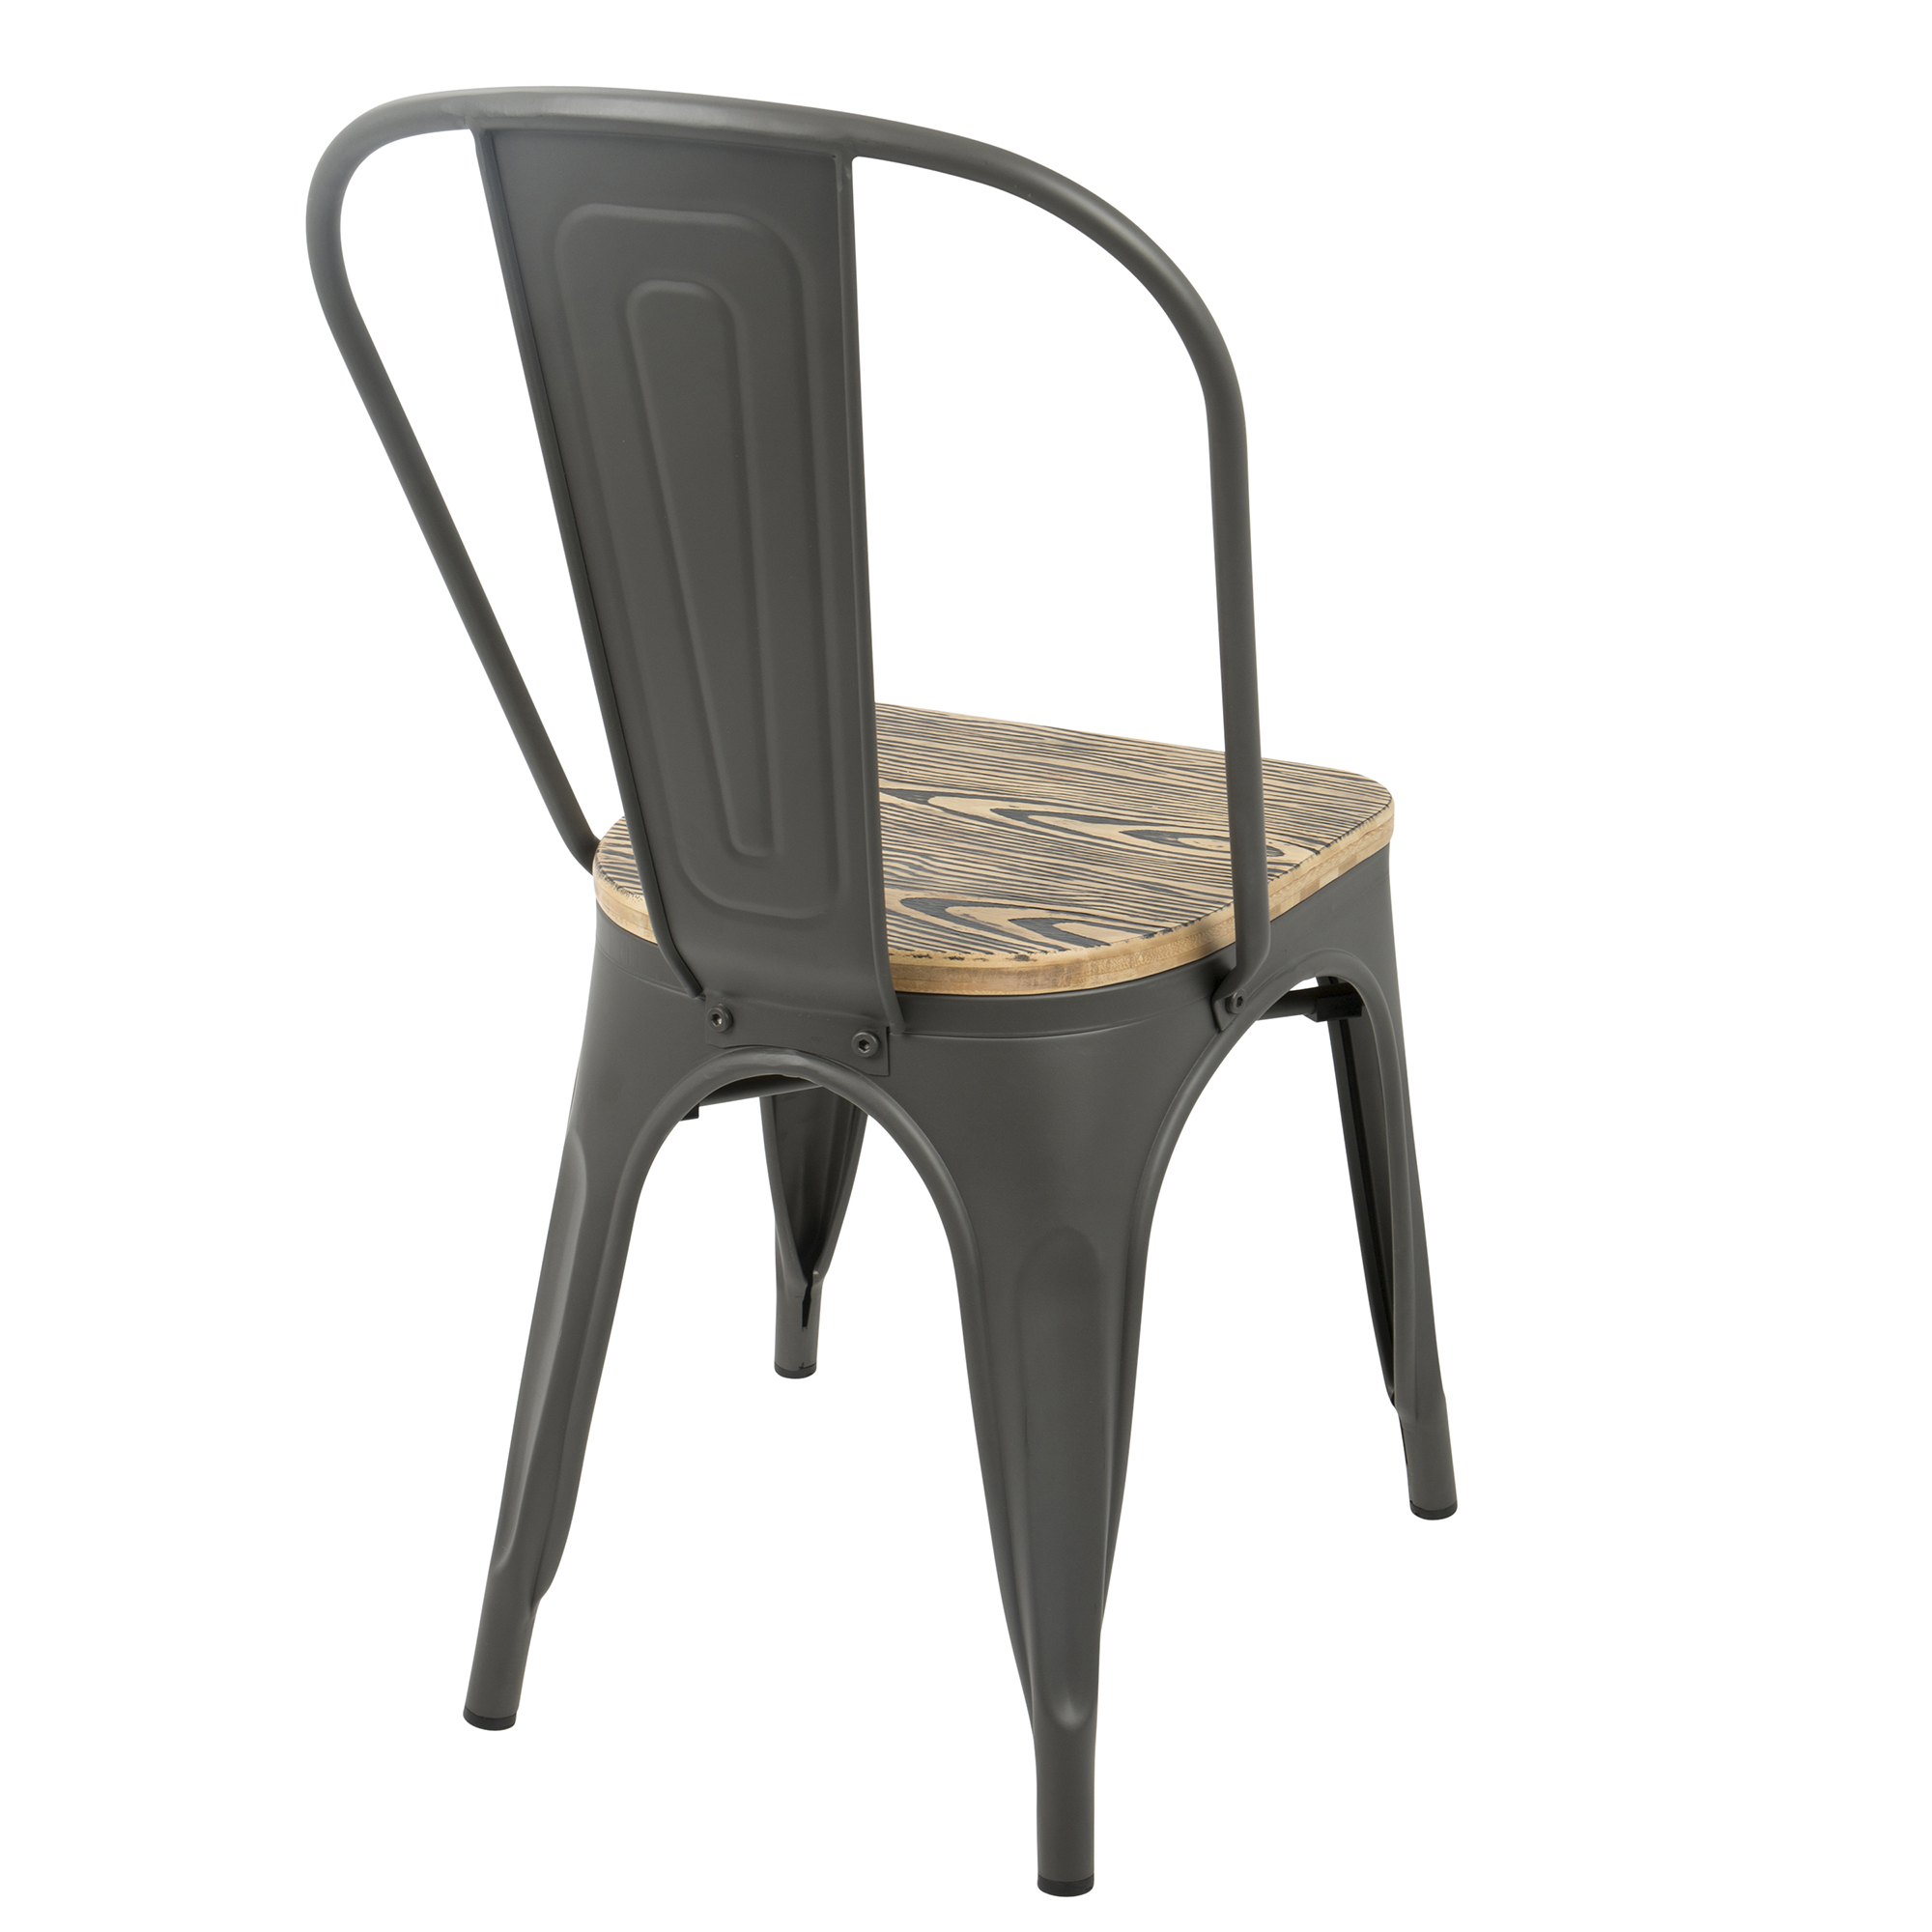 Oregon Farmhouse Stackable Dining Chair In Grey And Brown By Lumisource Set Of 2